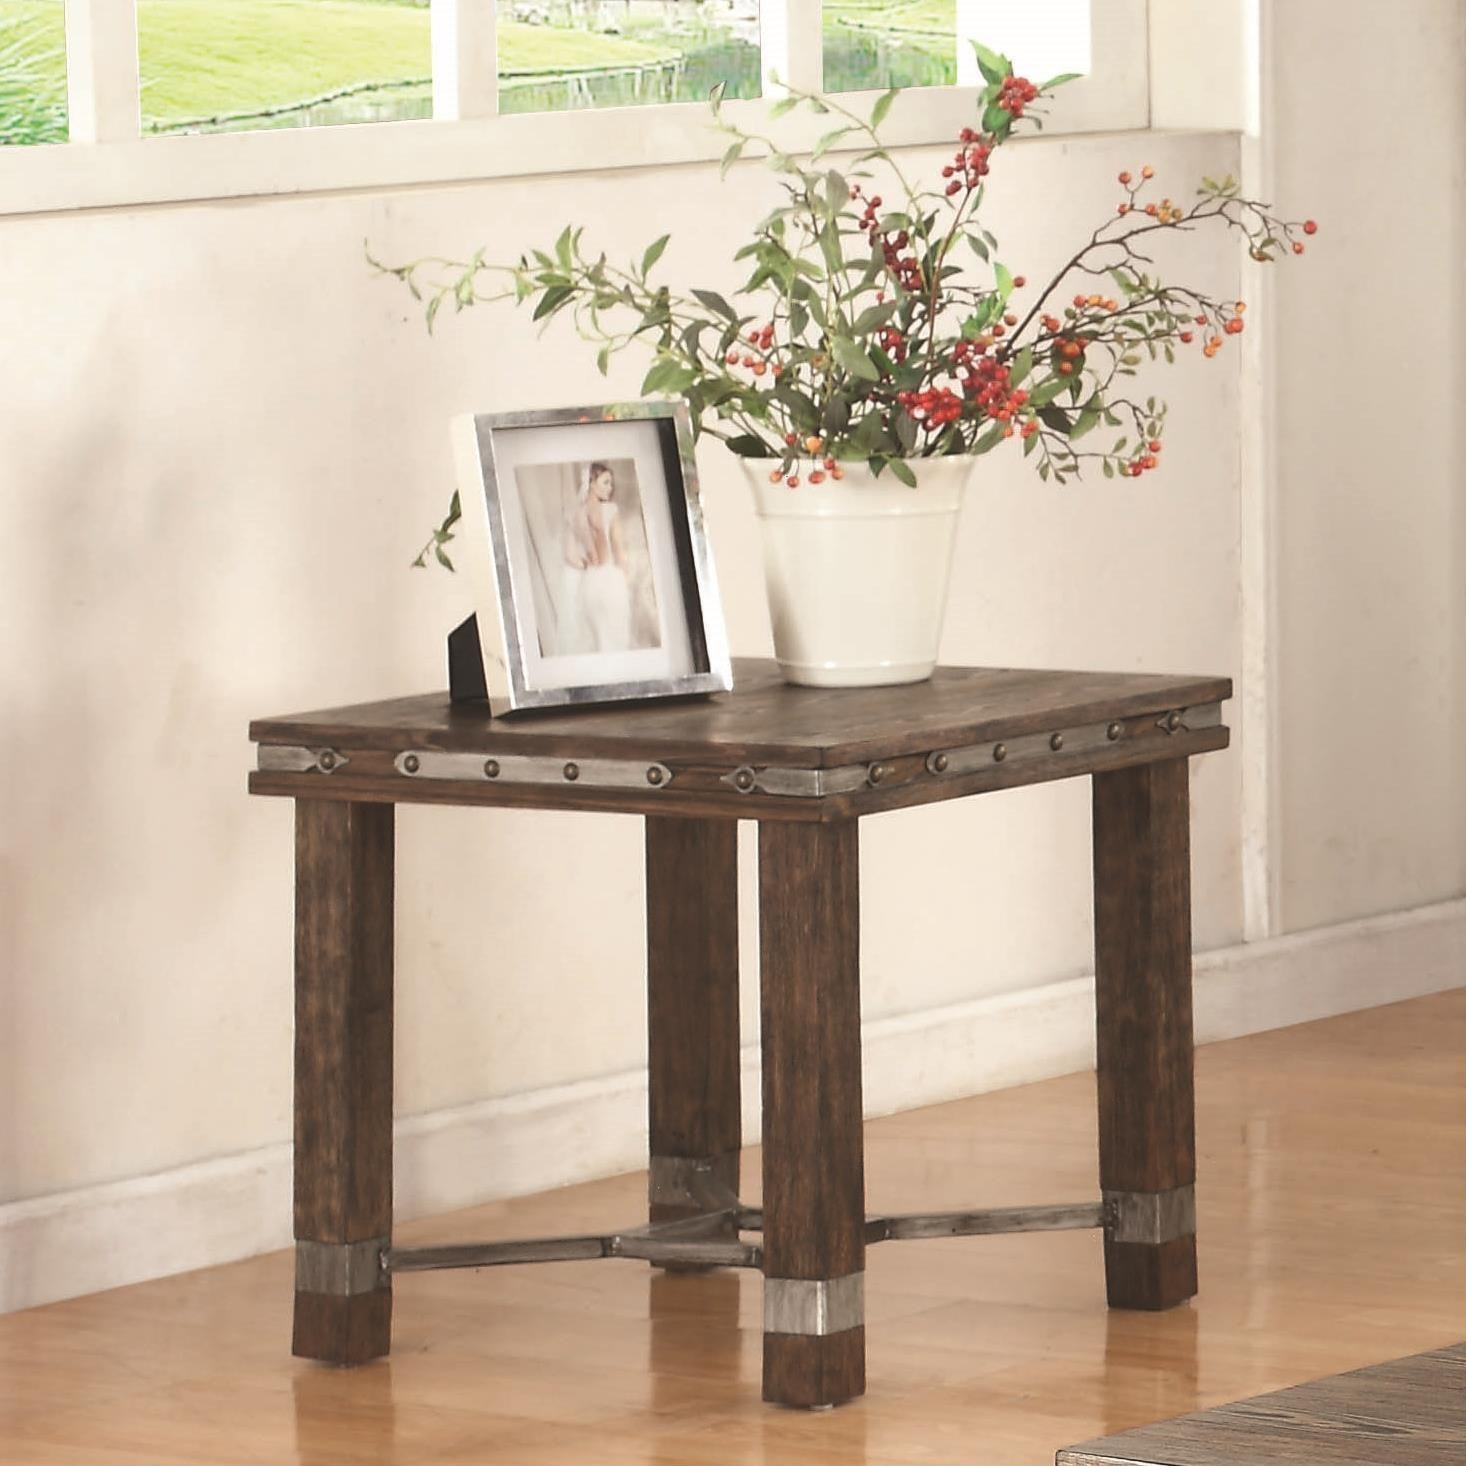 703547 rustic end table